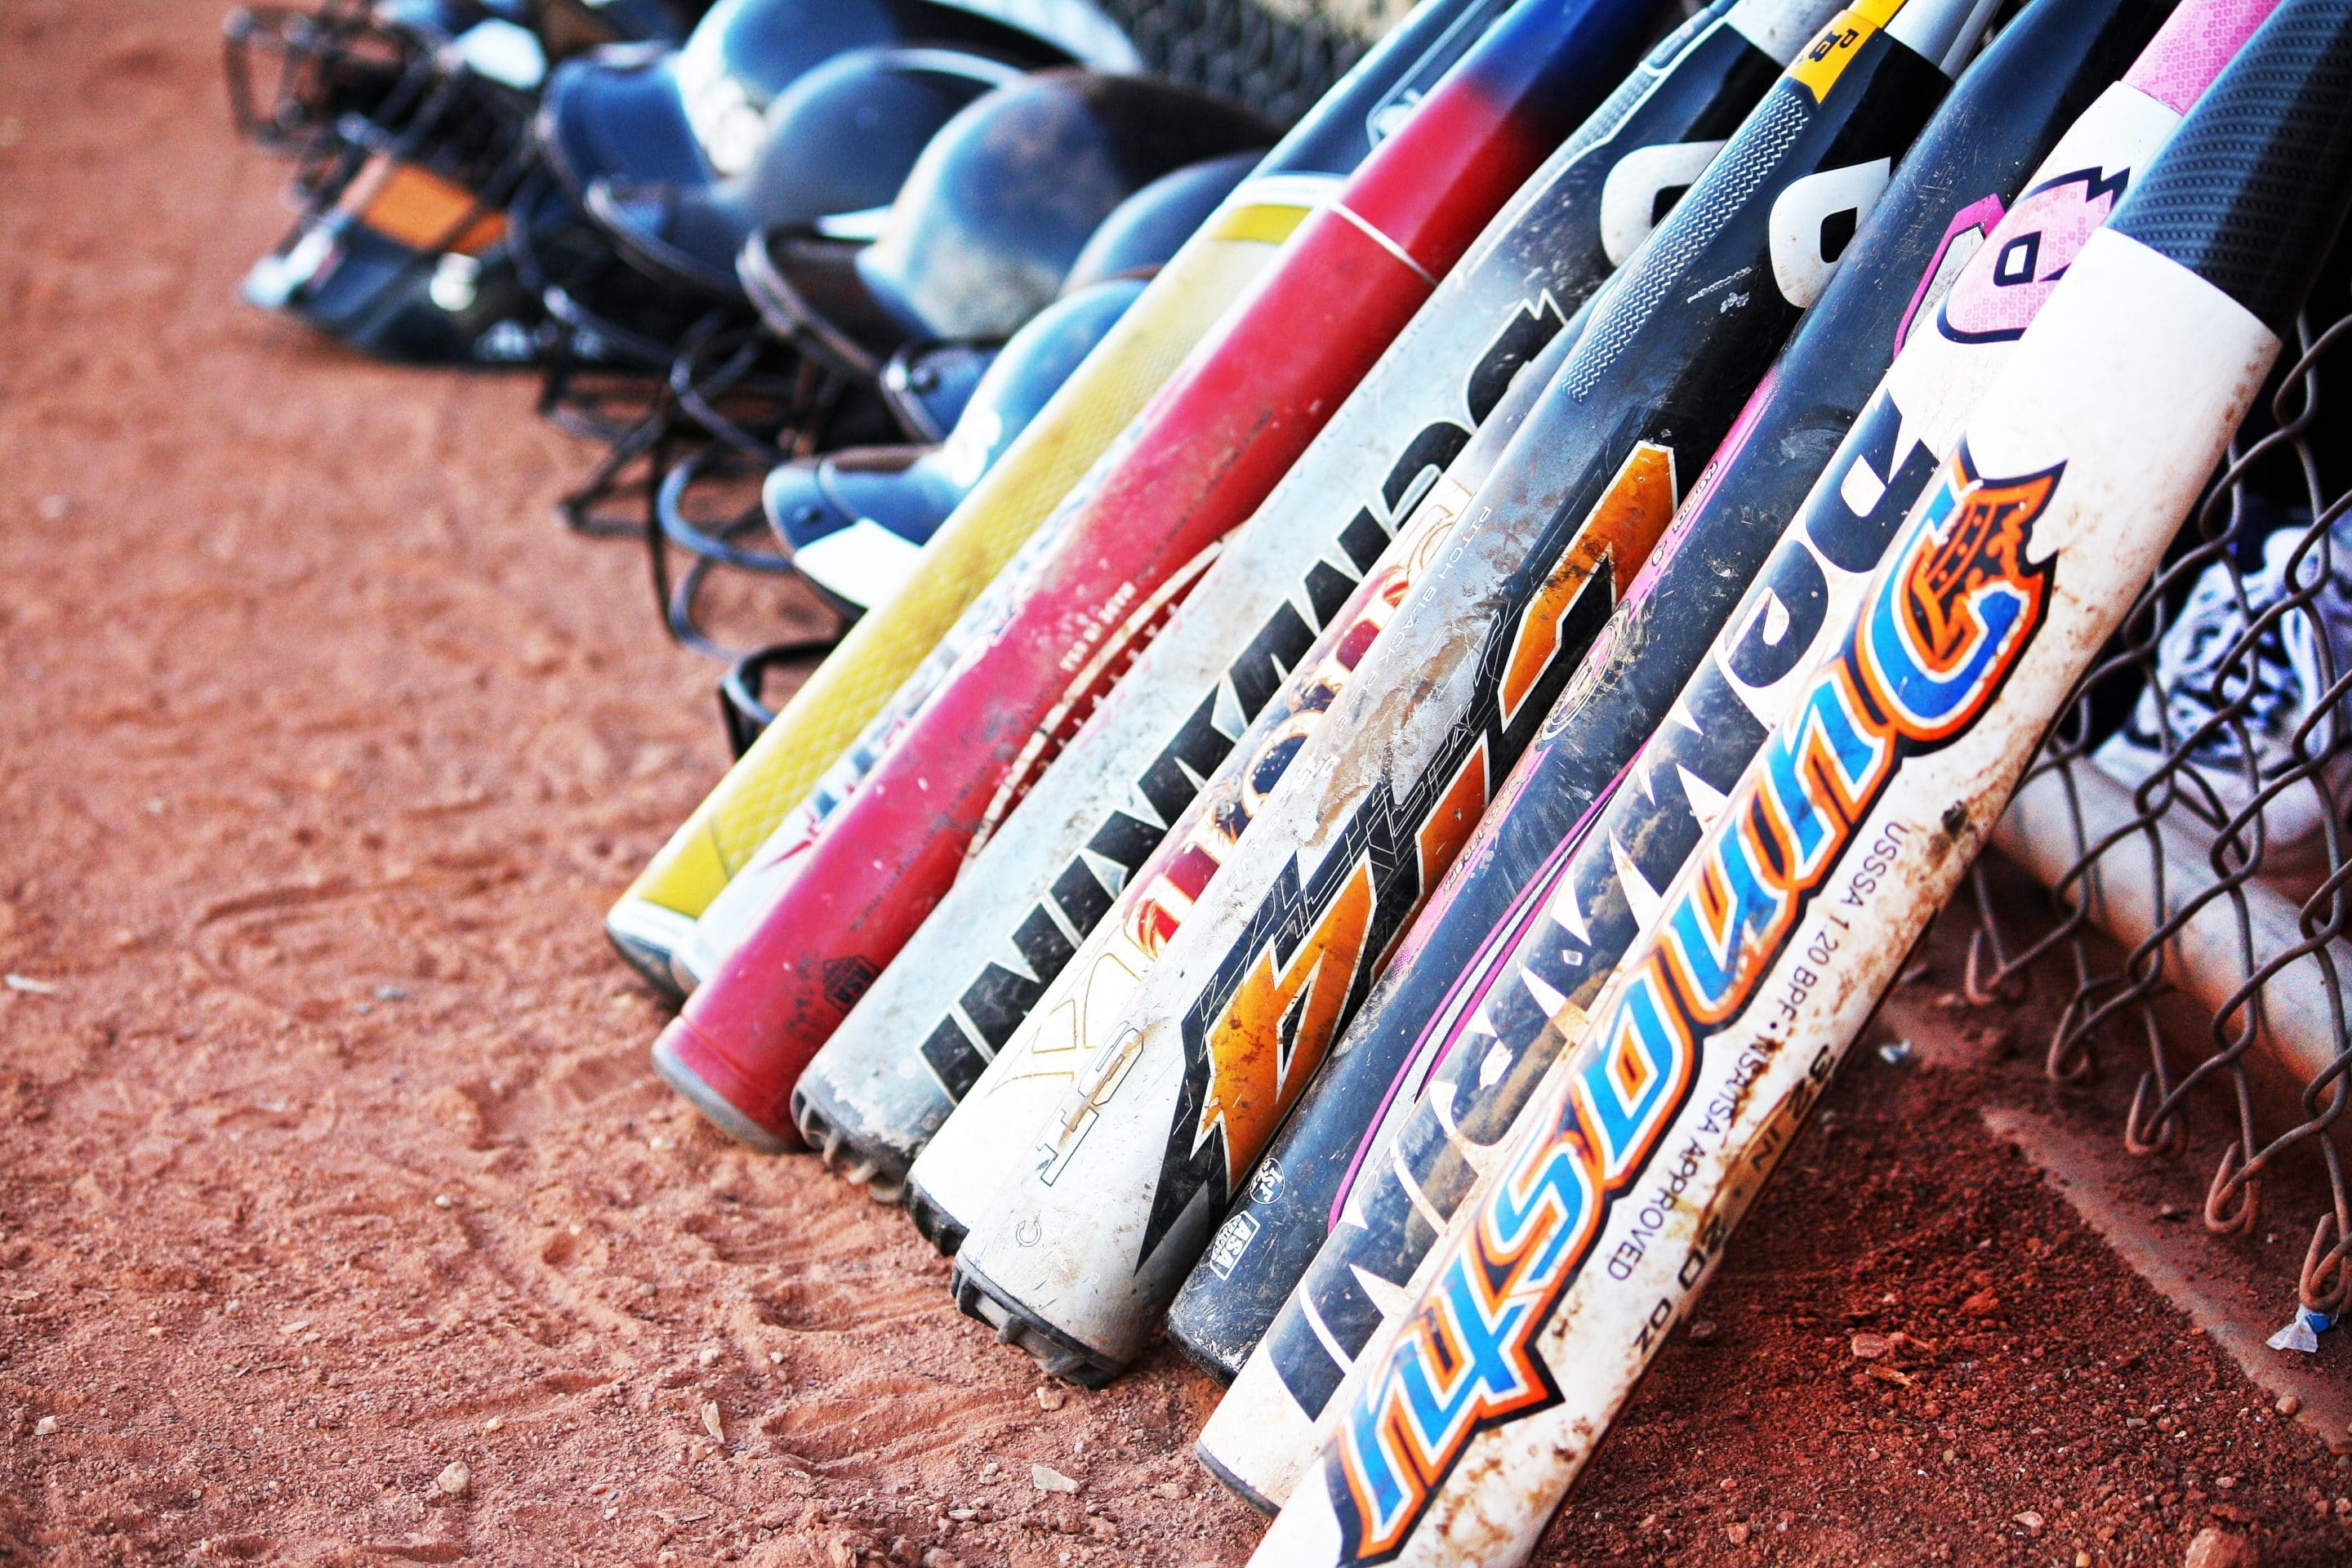 The 20 Best Softball Bats for the 2019 Season: Reviews of Slowpitch and Fastpitch Bats